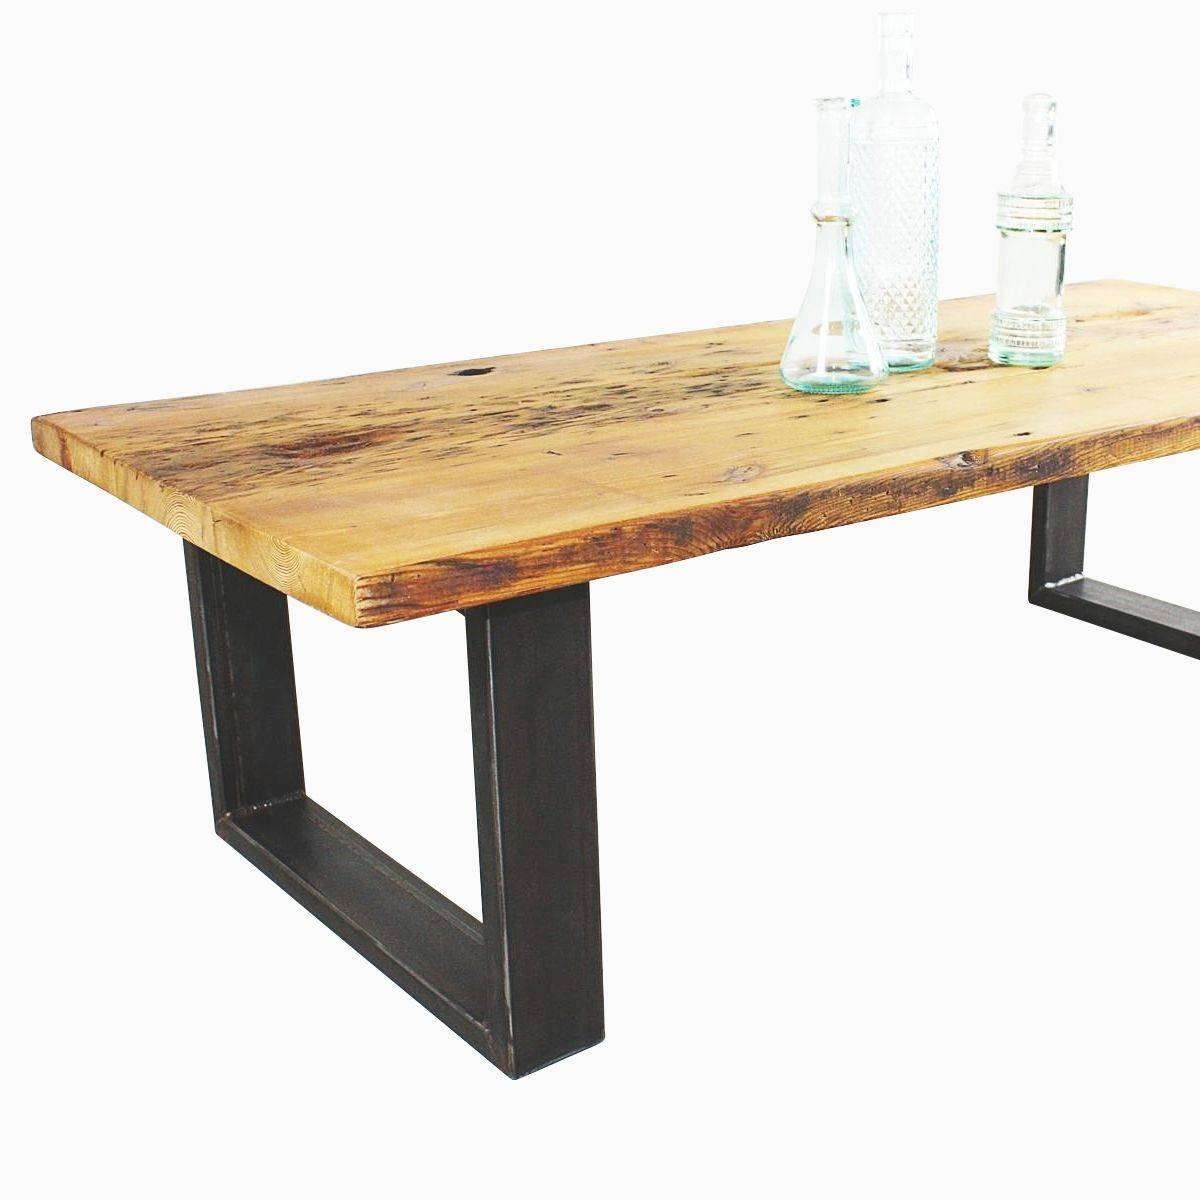 Buy A Hand Made Reclaimed Pine Coffee Table, Made To Order From intended for Pine Coffee Tables (Image 3 of 30)